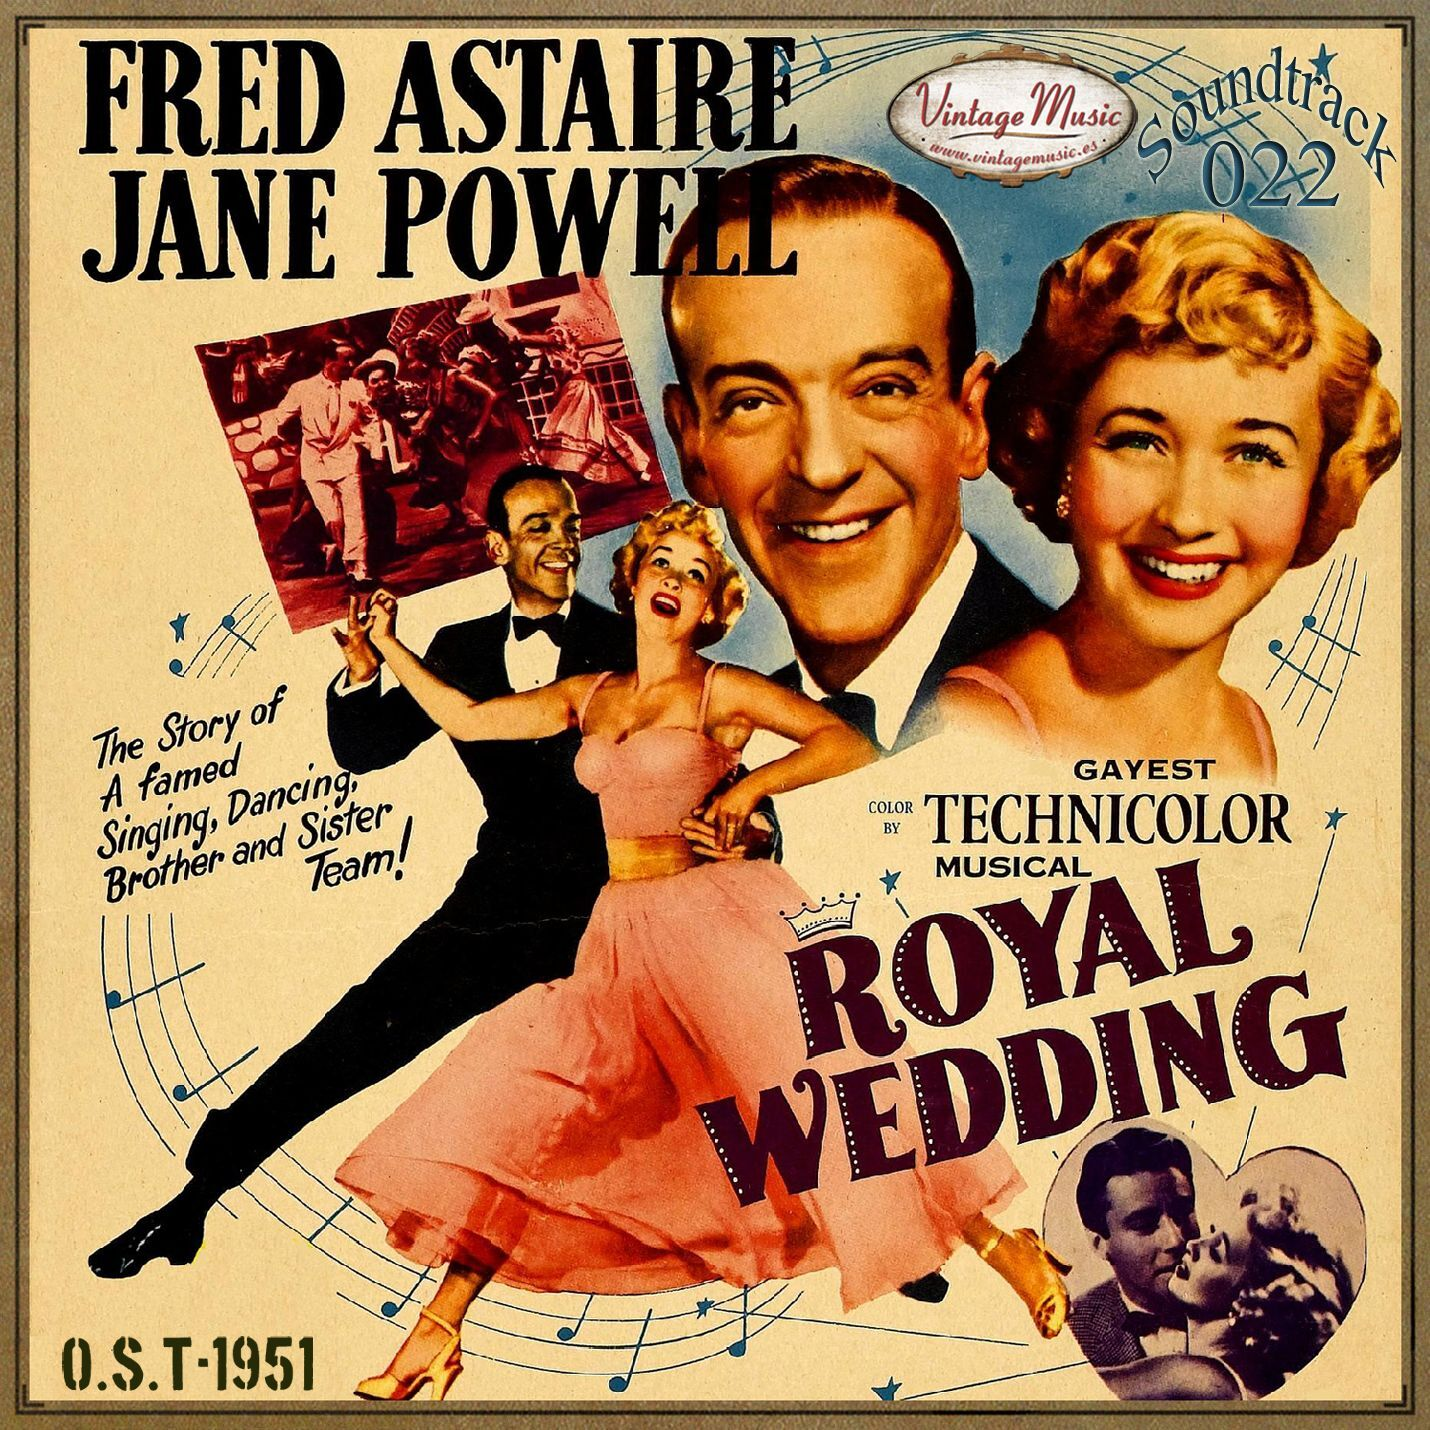 Various Artistas - ROYAL WEDDING Soundtrack CD 22/100 - O.S.T Original 1951 Fred Astaire Jane Powell - CD